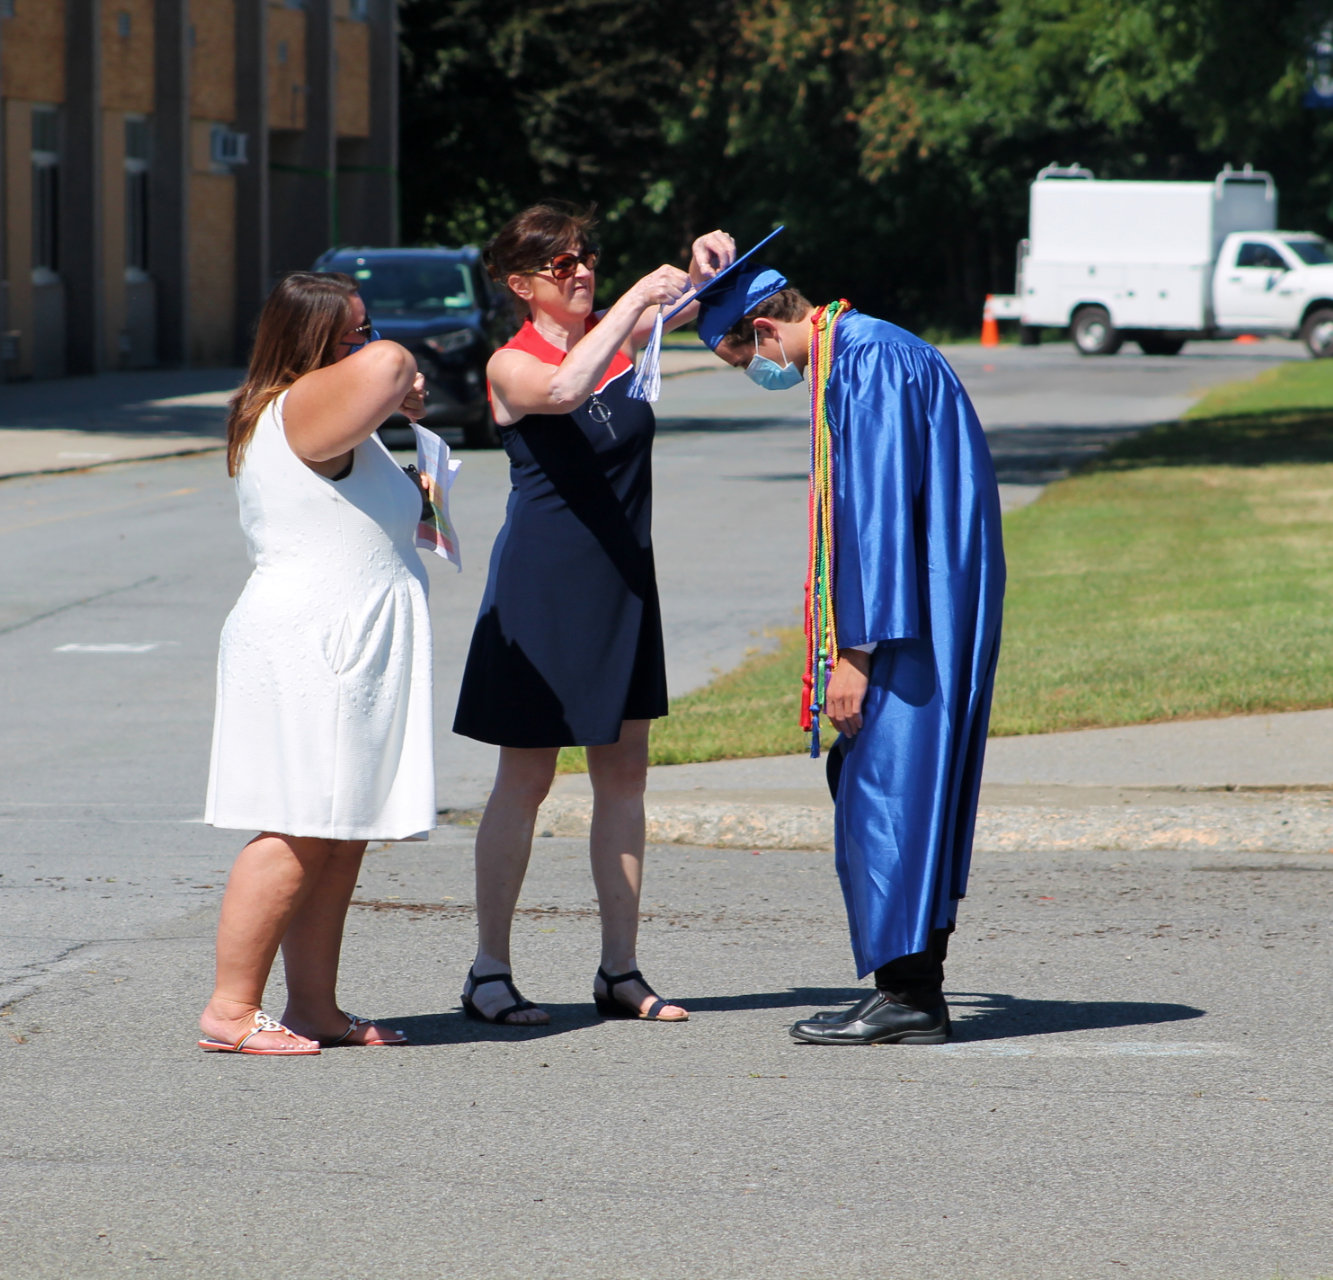 Senior Class Advisor, Antoinette Oakes and Graduation Coordinator, Kimberly Carver help Class of 2020 graduate Connor Fitzgibbons adjust his tassel.